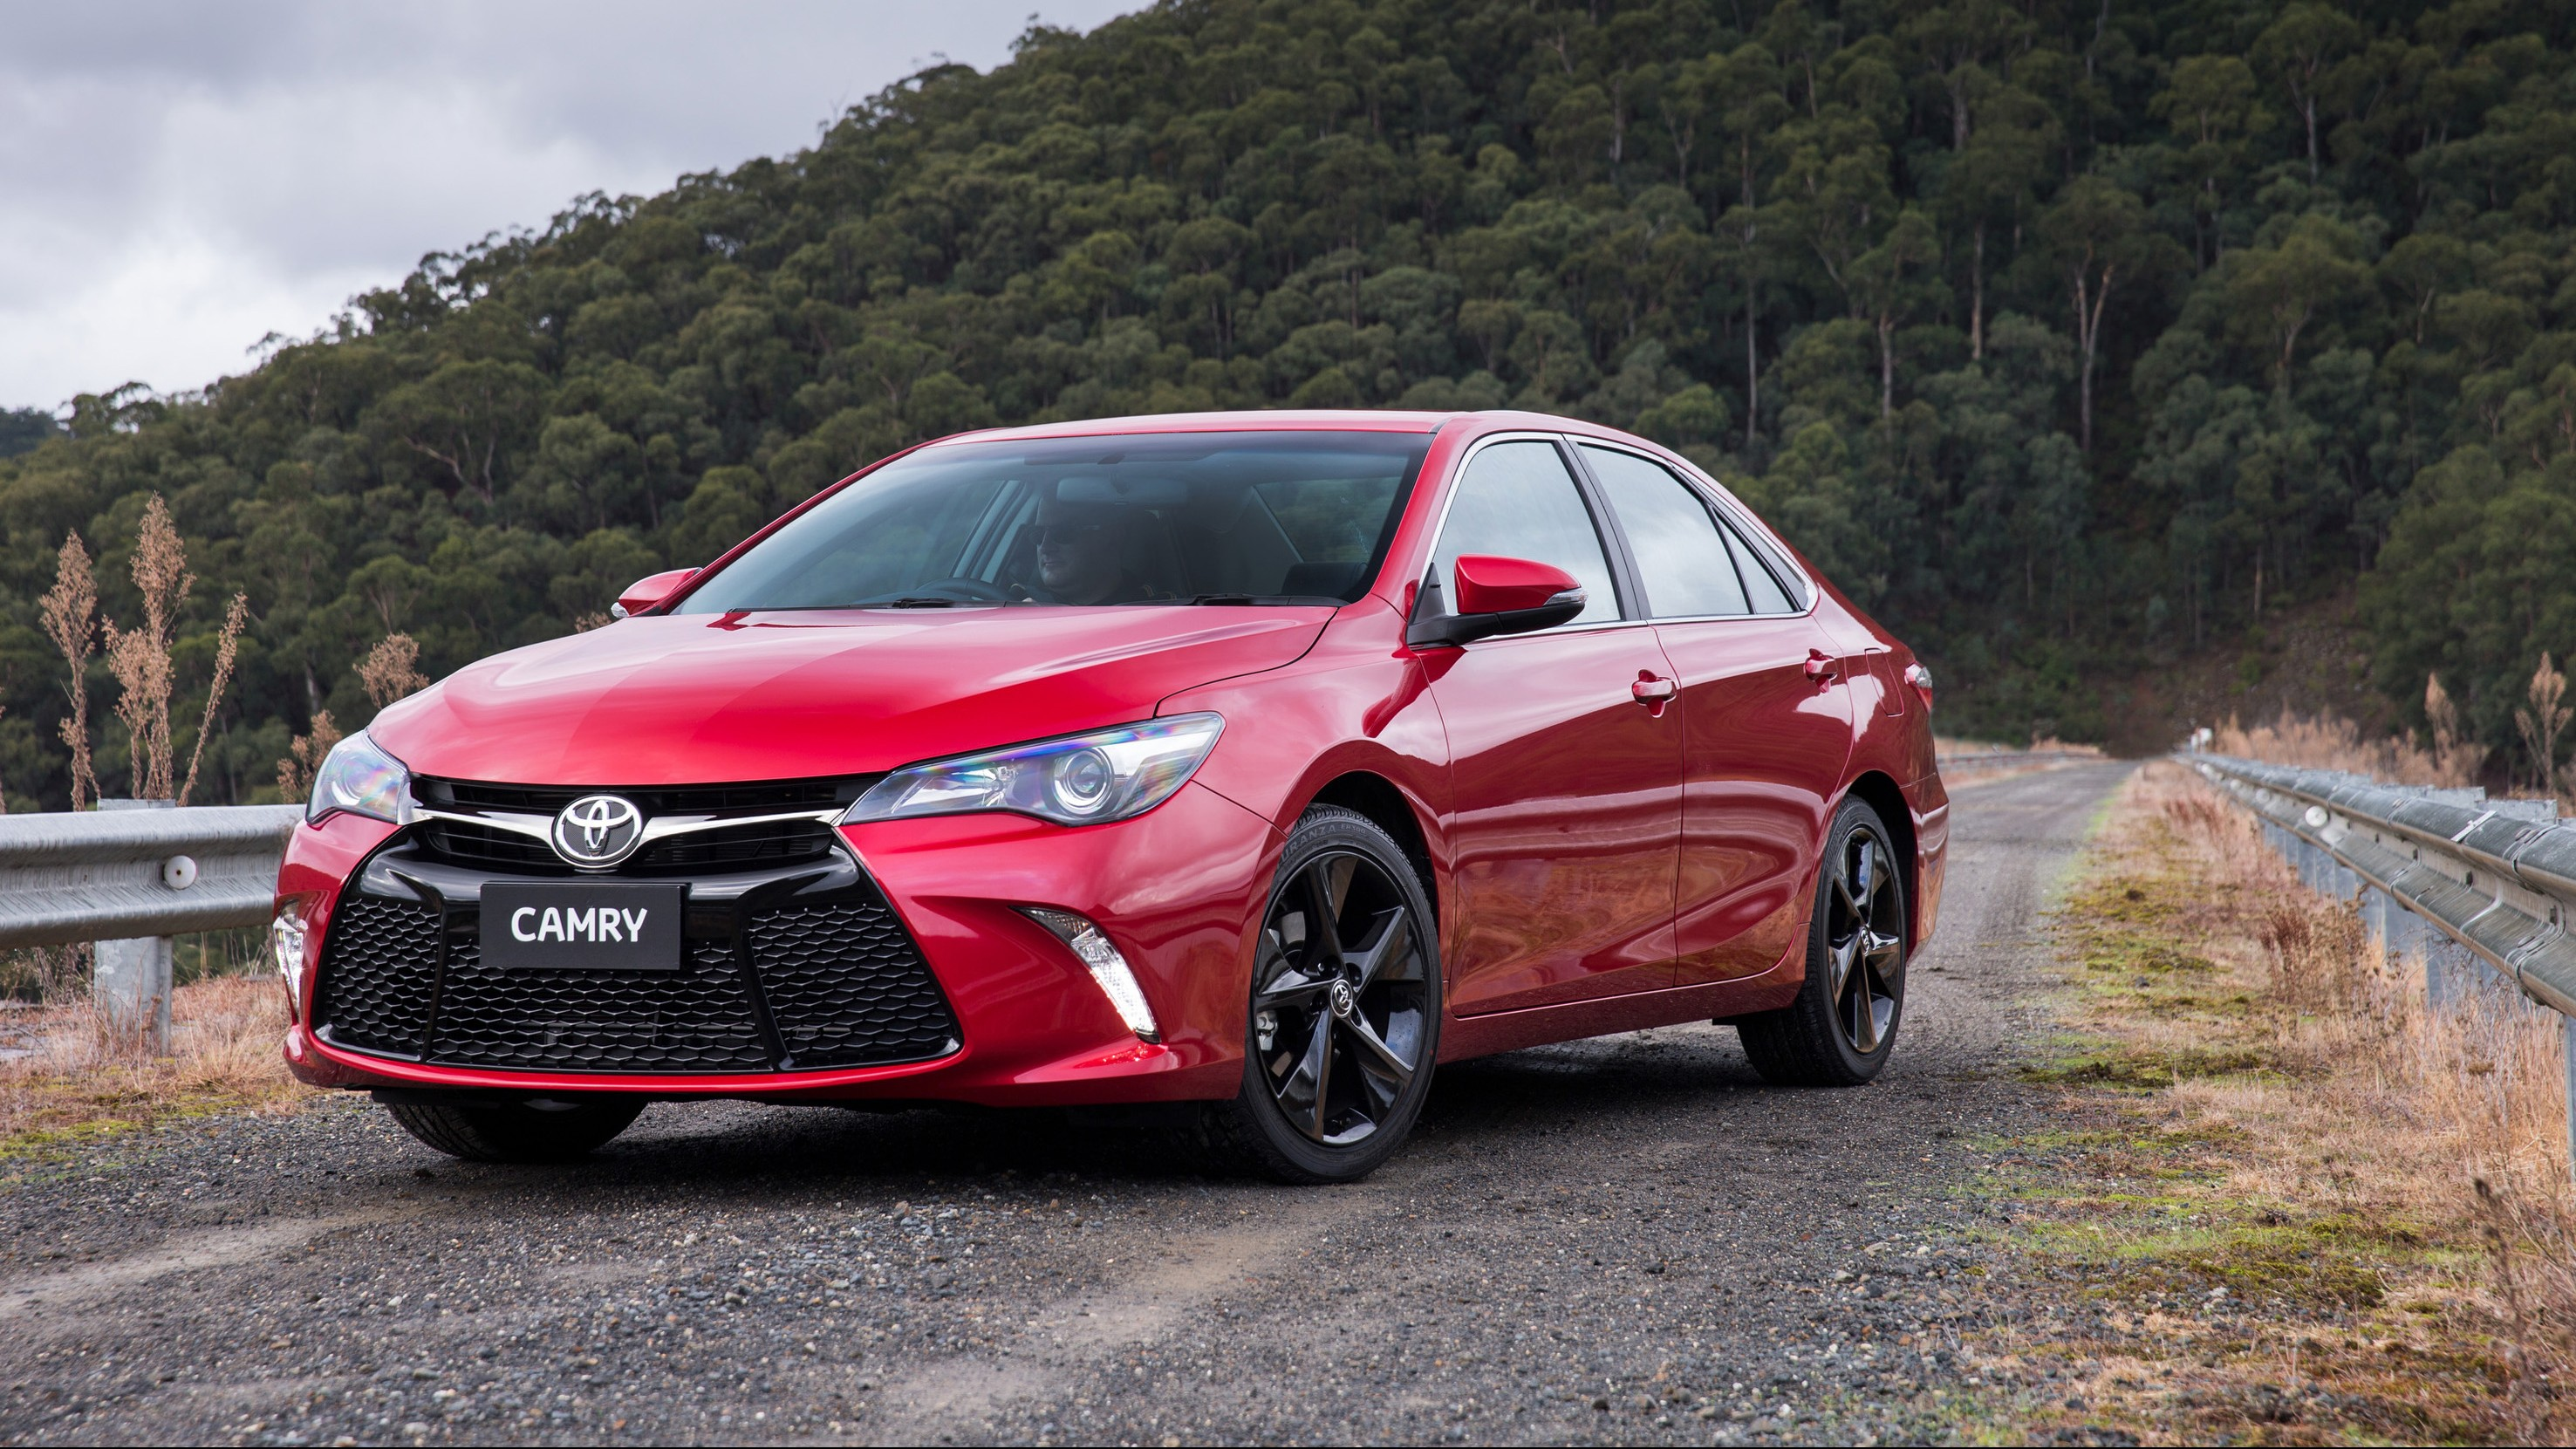 2015 toyota camry australian price and specs chasing cars. Black Bedroom Furniture Sets. Home Design Ideas